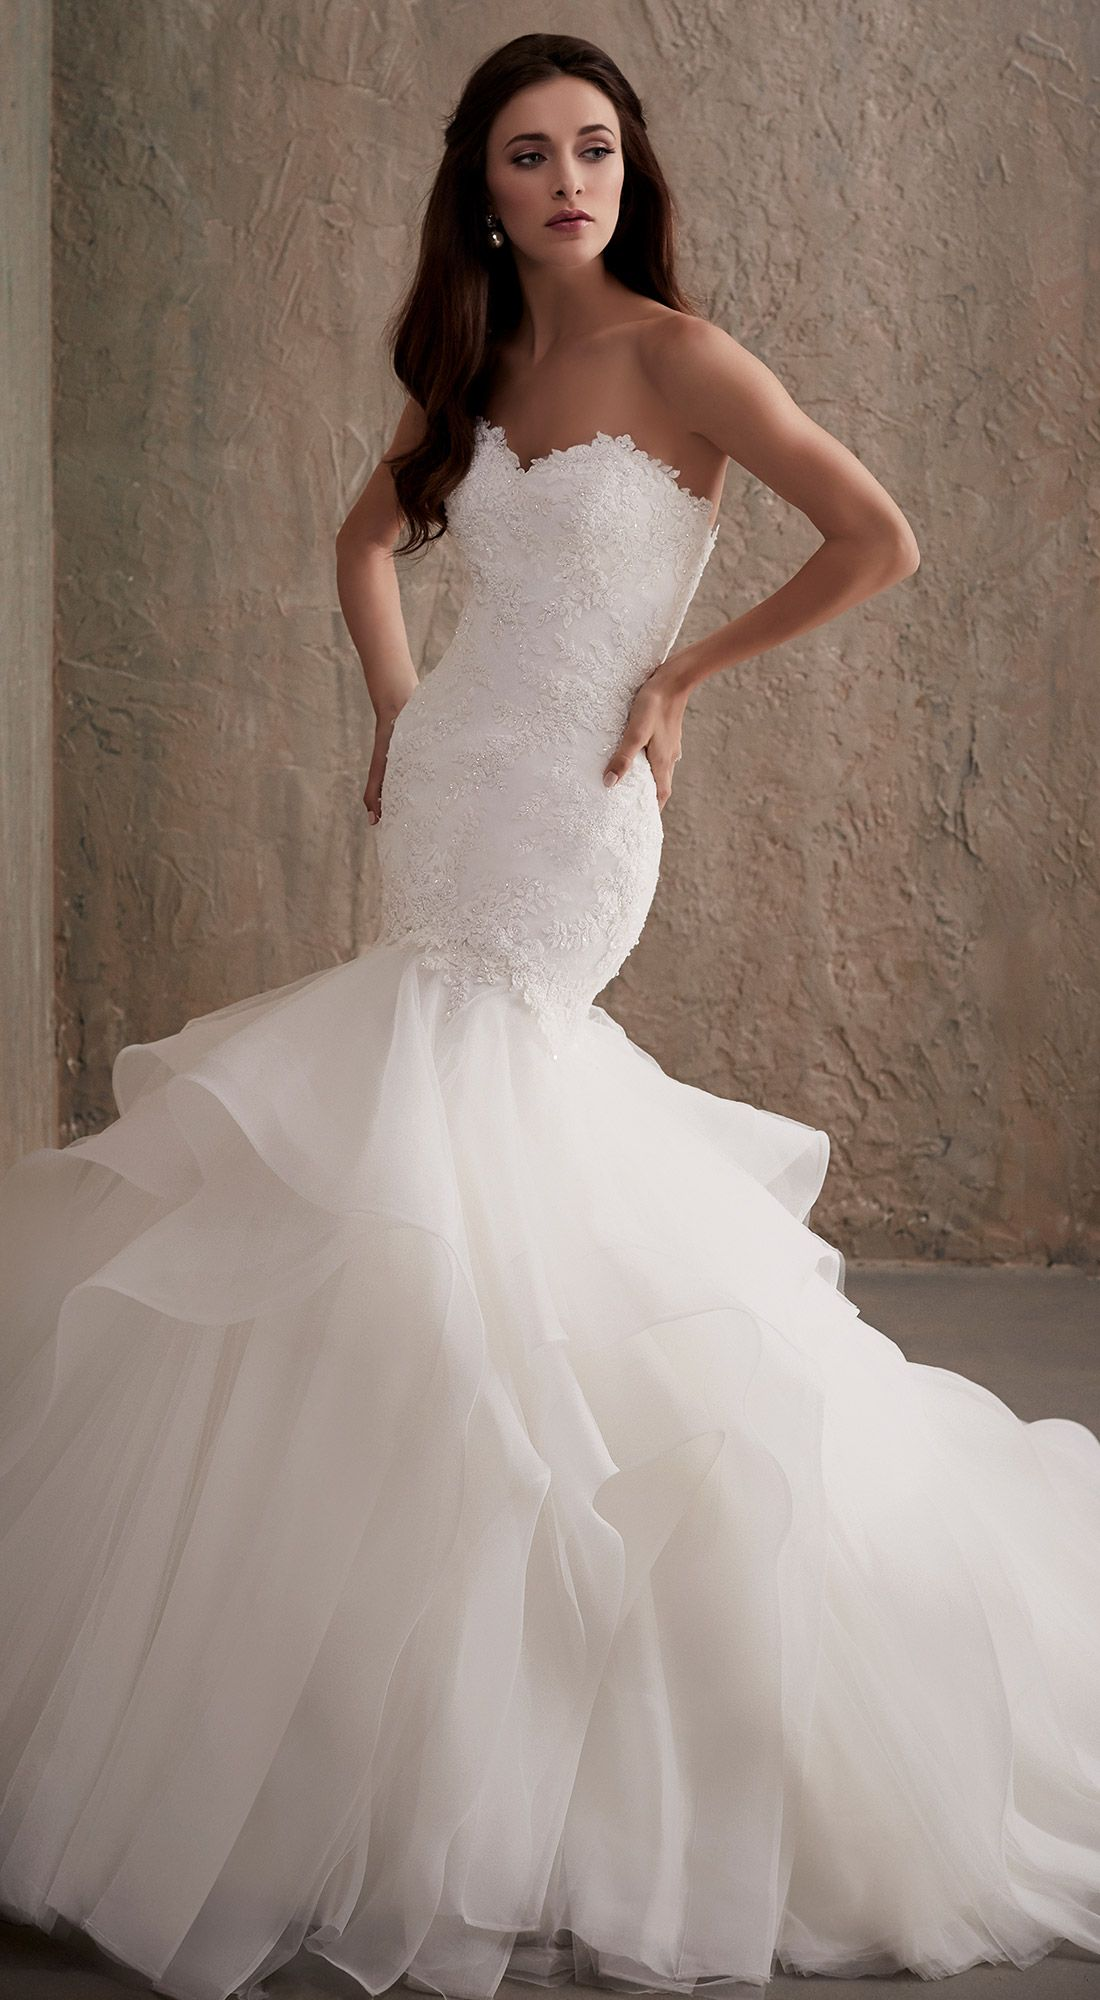 Wedding dresses mermaid style lace  Pin by Brittany Larsen on Dream Dress  Pinterest  Romantic lace